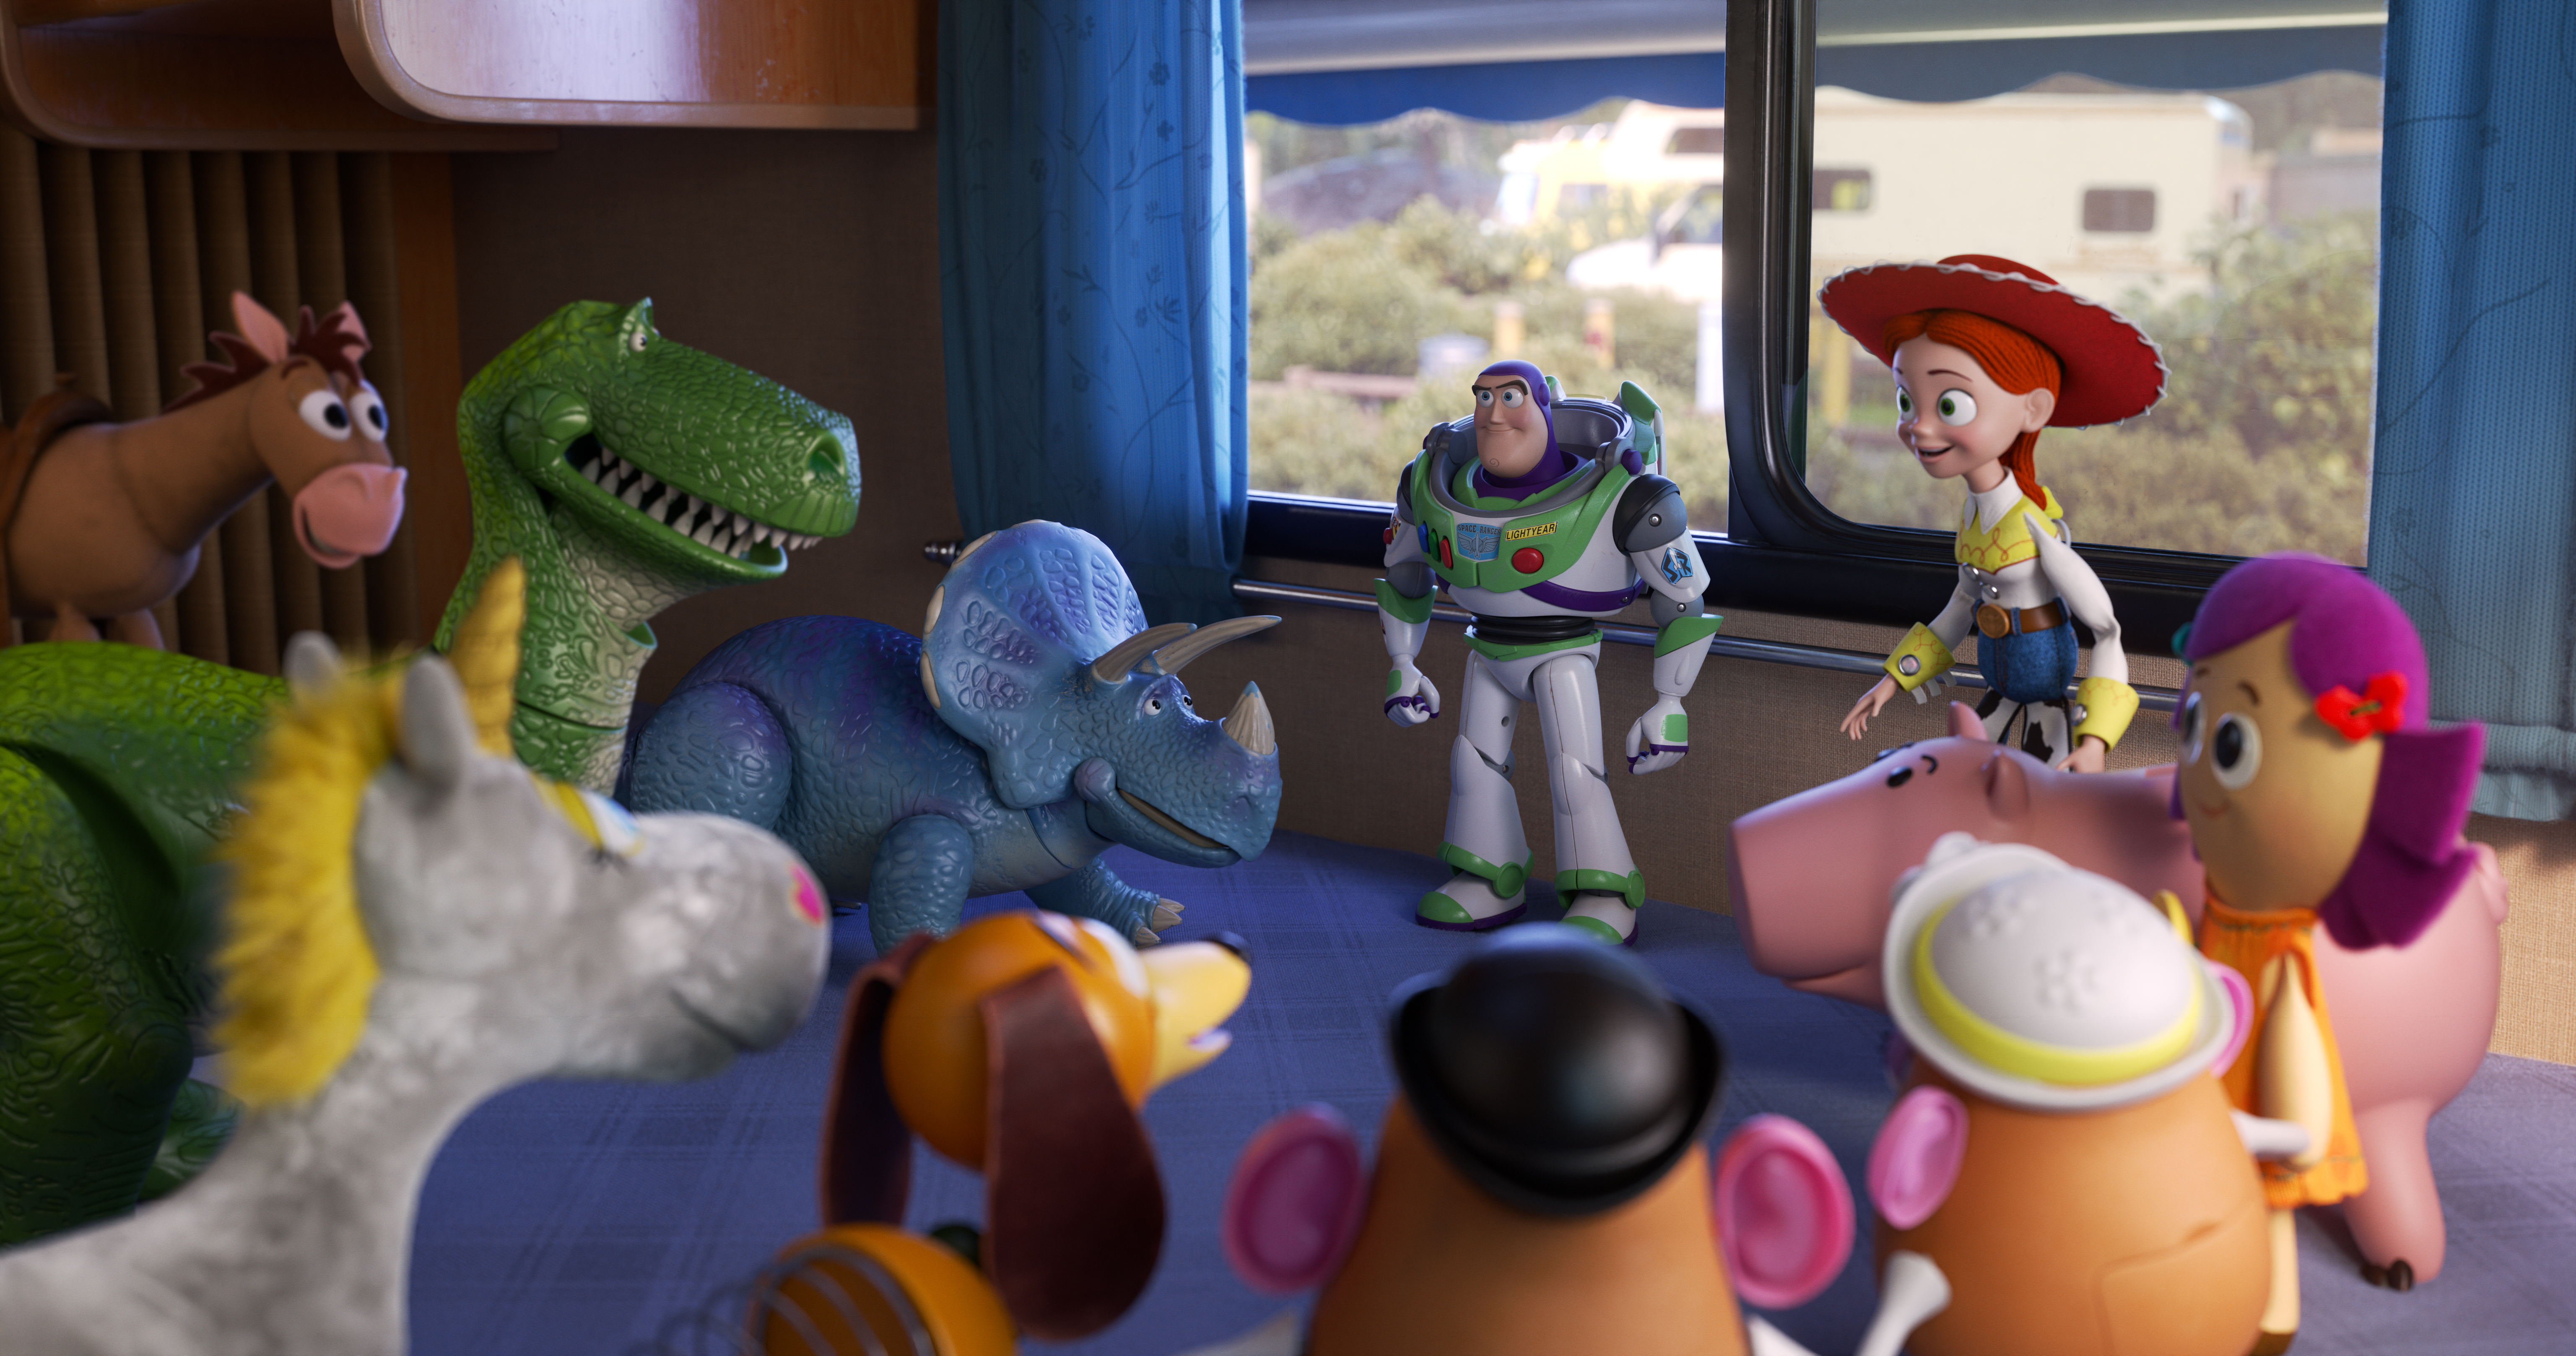 Toy Story 4: Woody Was Pixar's Reason to Go Beyond Toy Story 3